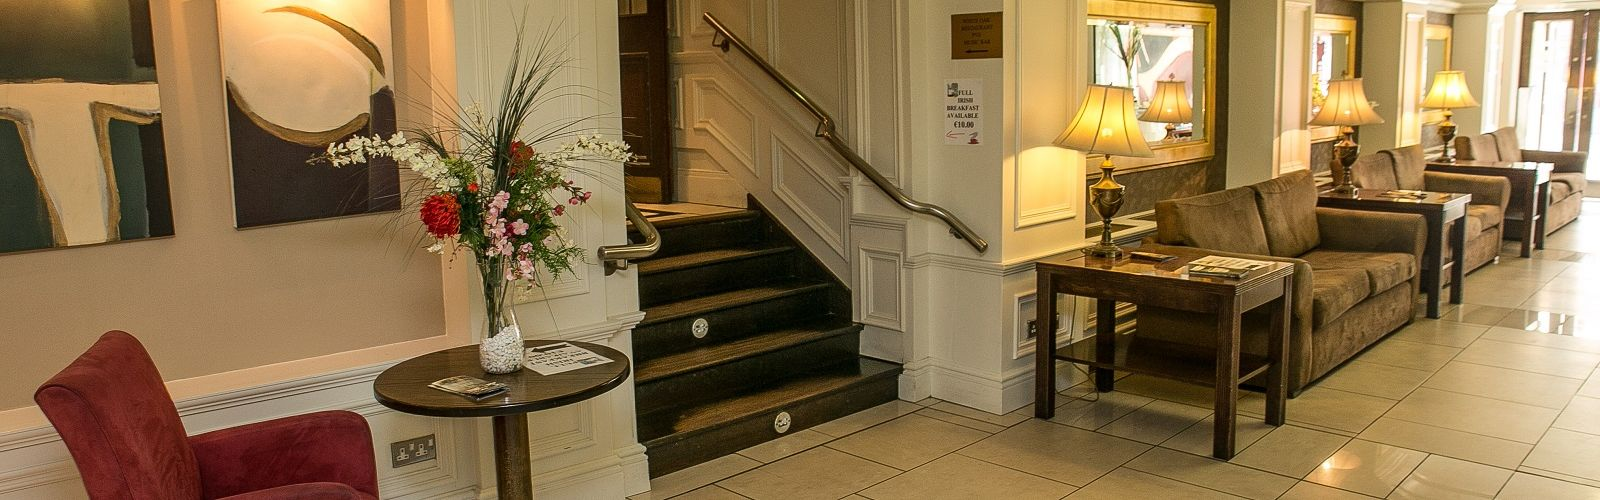 Lobby Accommodation KIlkenny City Centre